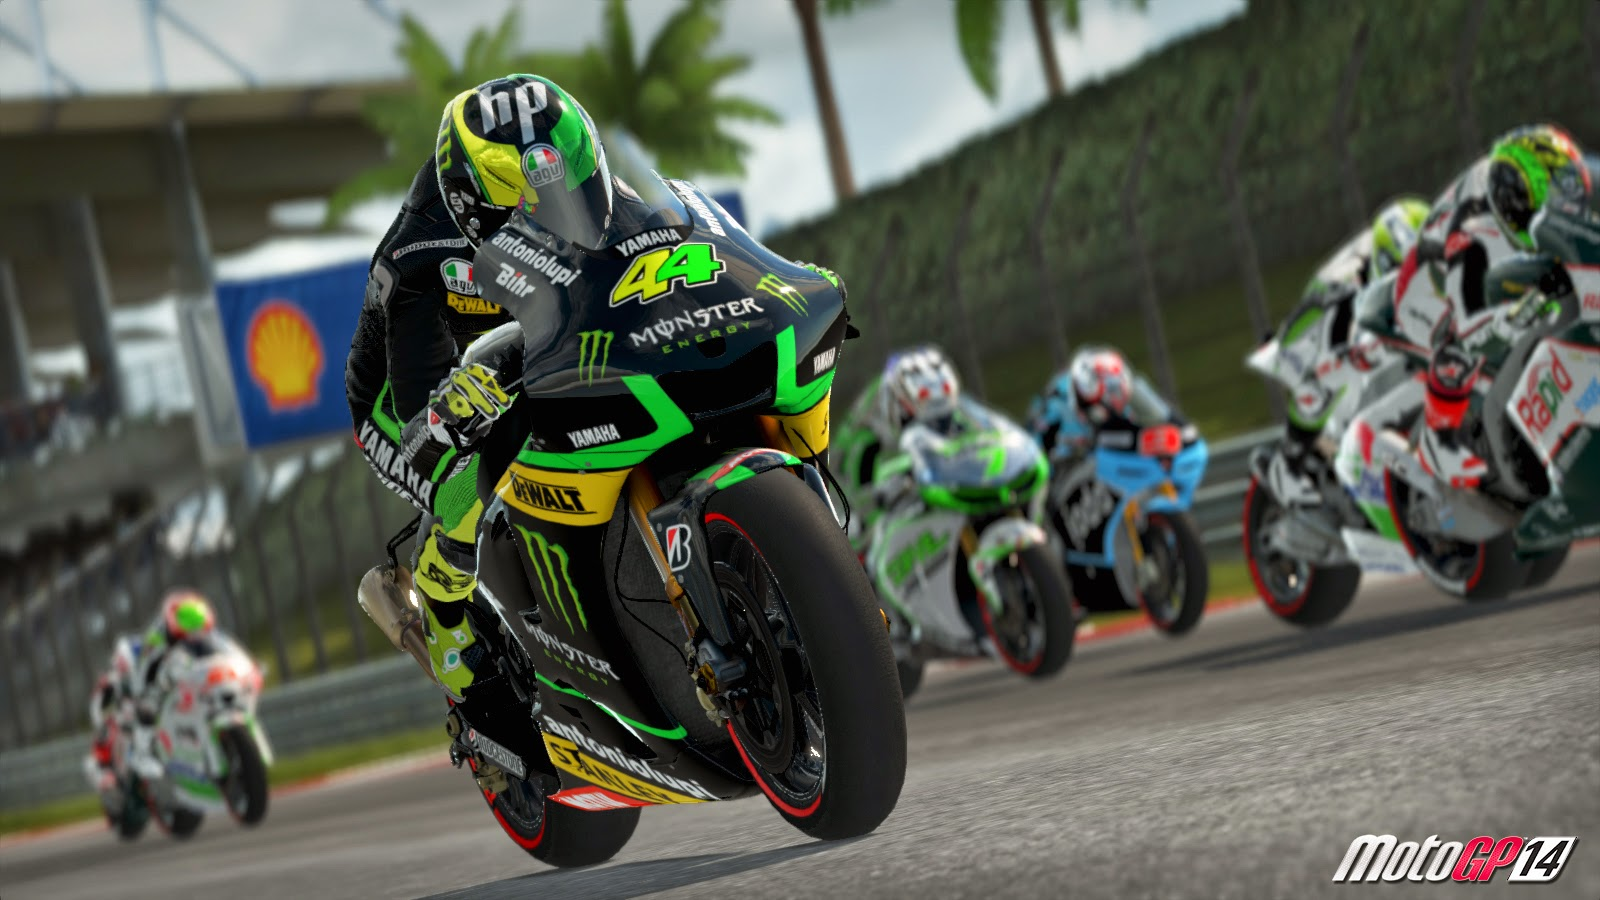 Free Download MotoGp 14 2014 Reloaded Full Version PC Game Latest Highly Compressed | Welcome